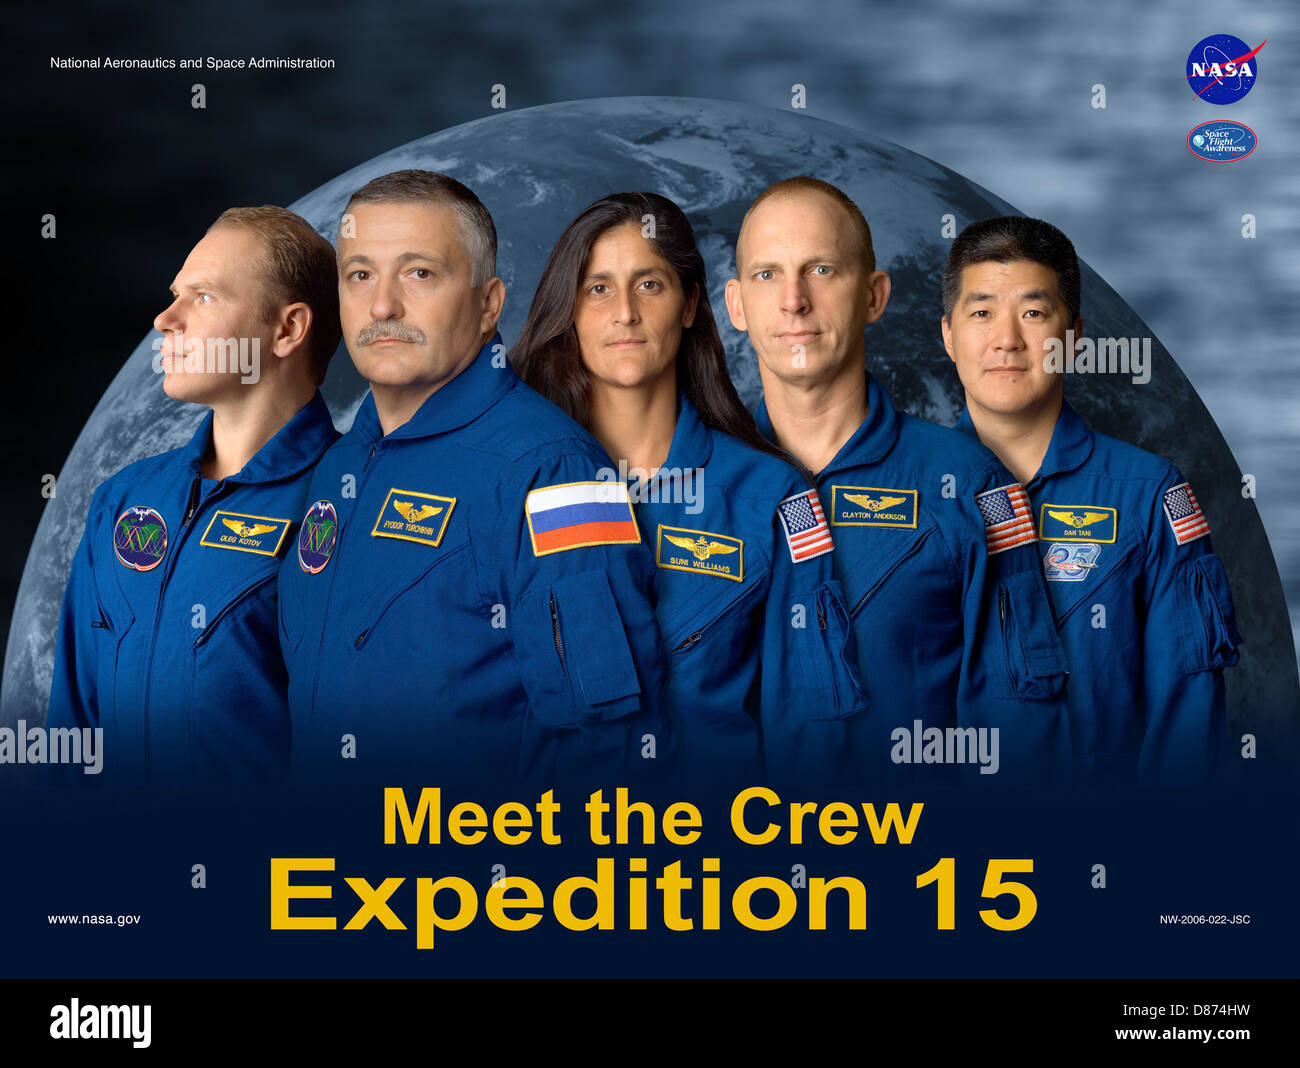 Expedition 15 crew poster.jpg - Stock Image